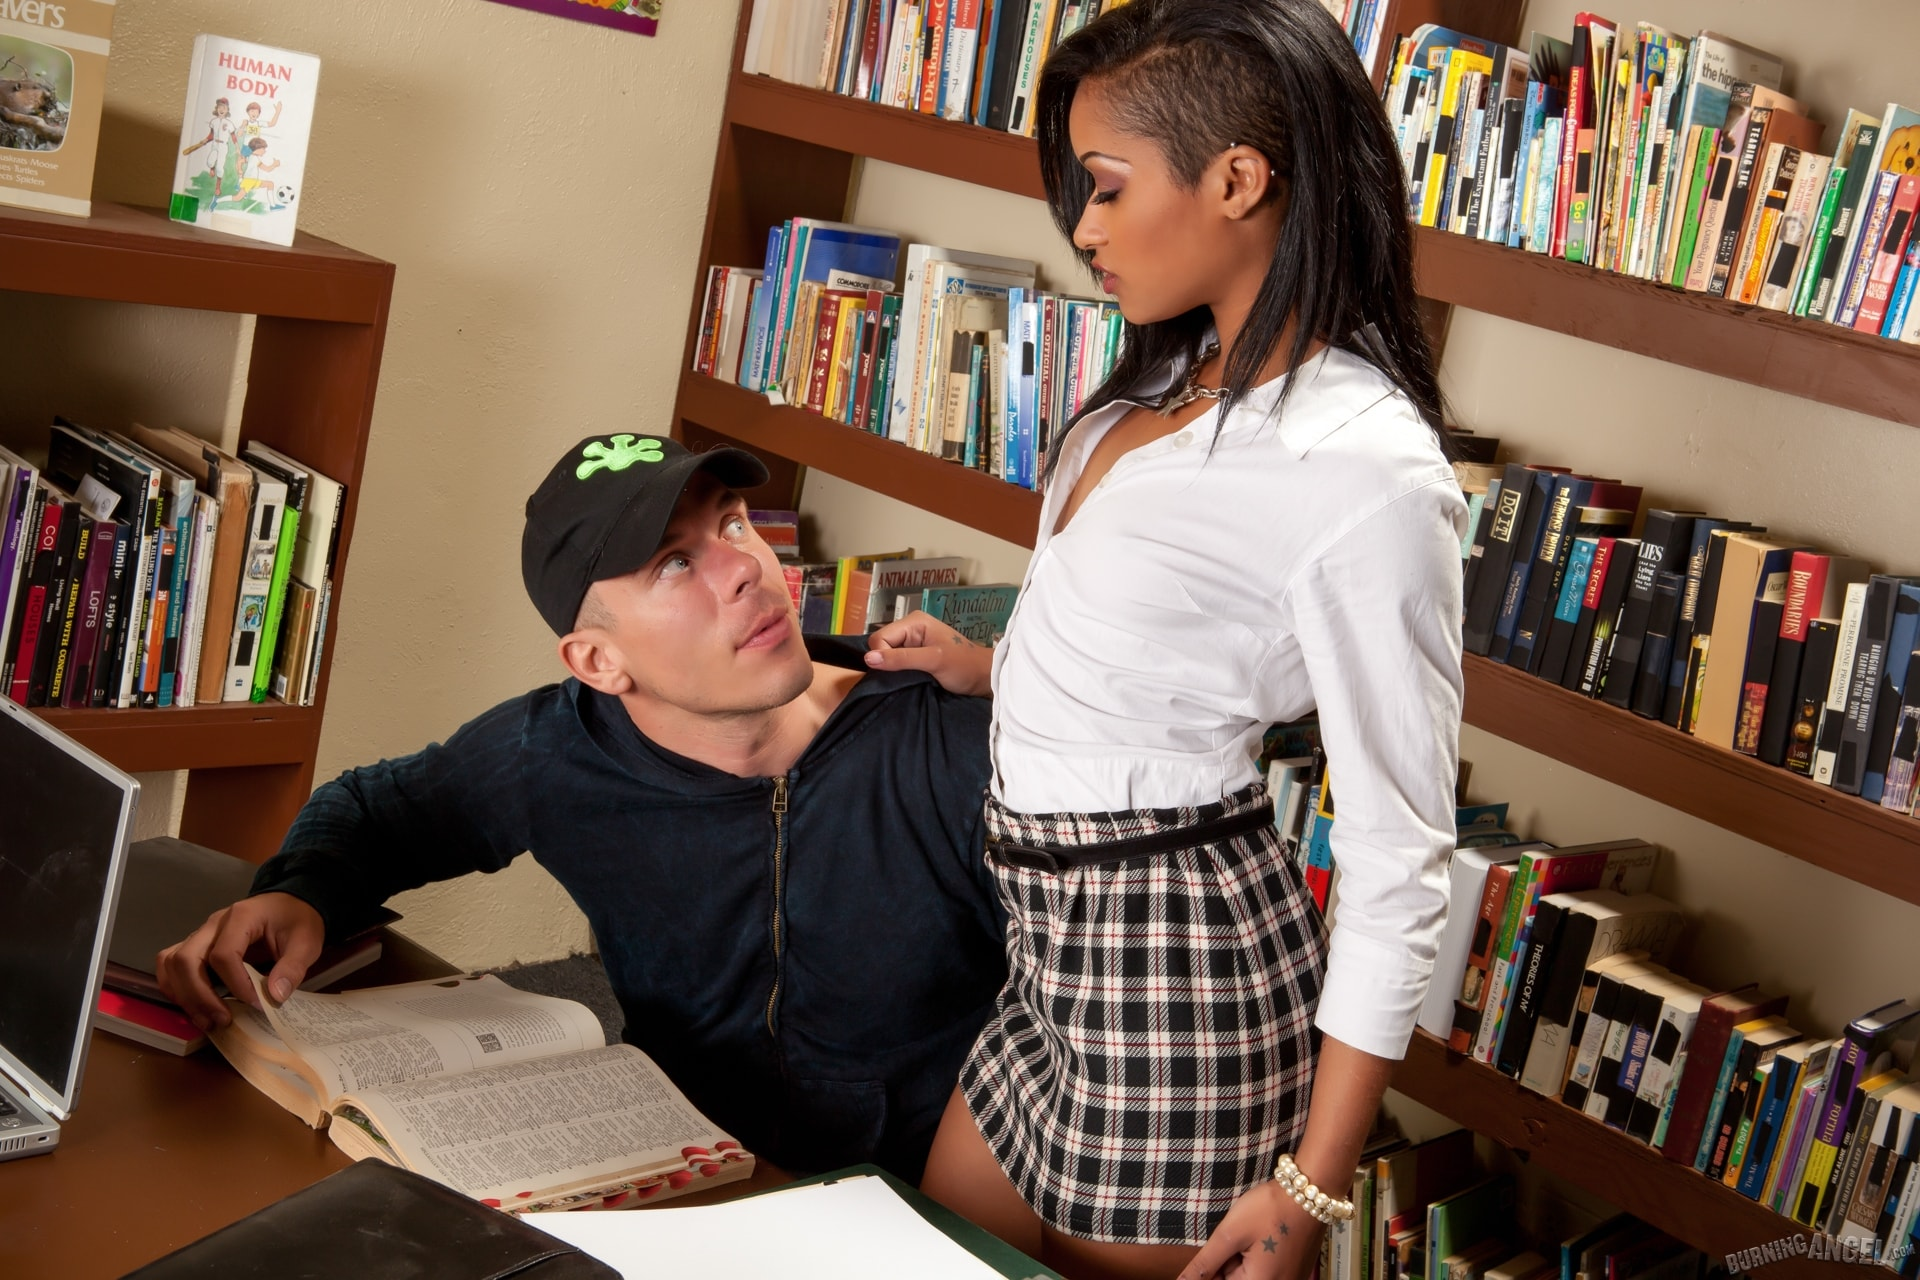 Burning Angel 'Skin Has Sex In A Library' starring Skin Diamond (Photo 1)